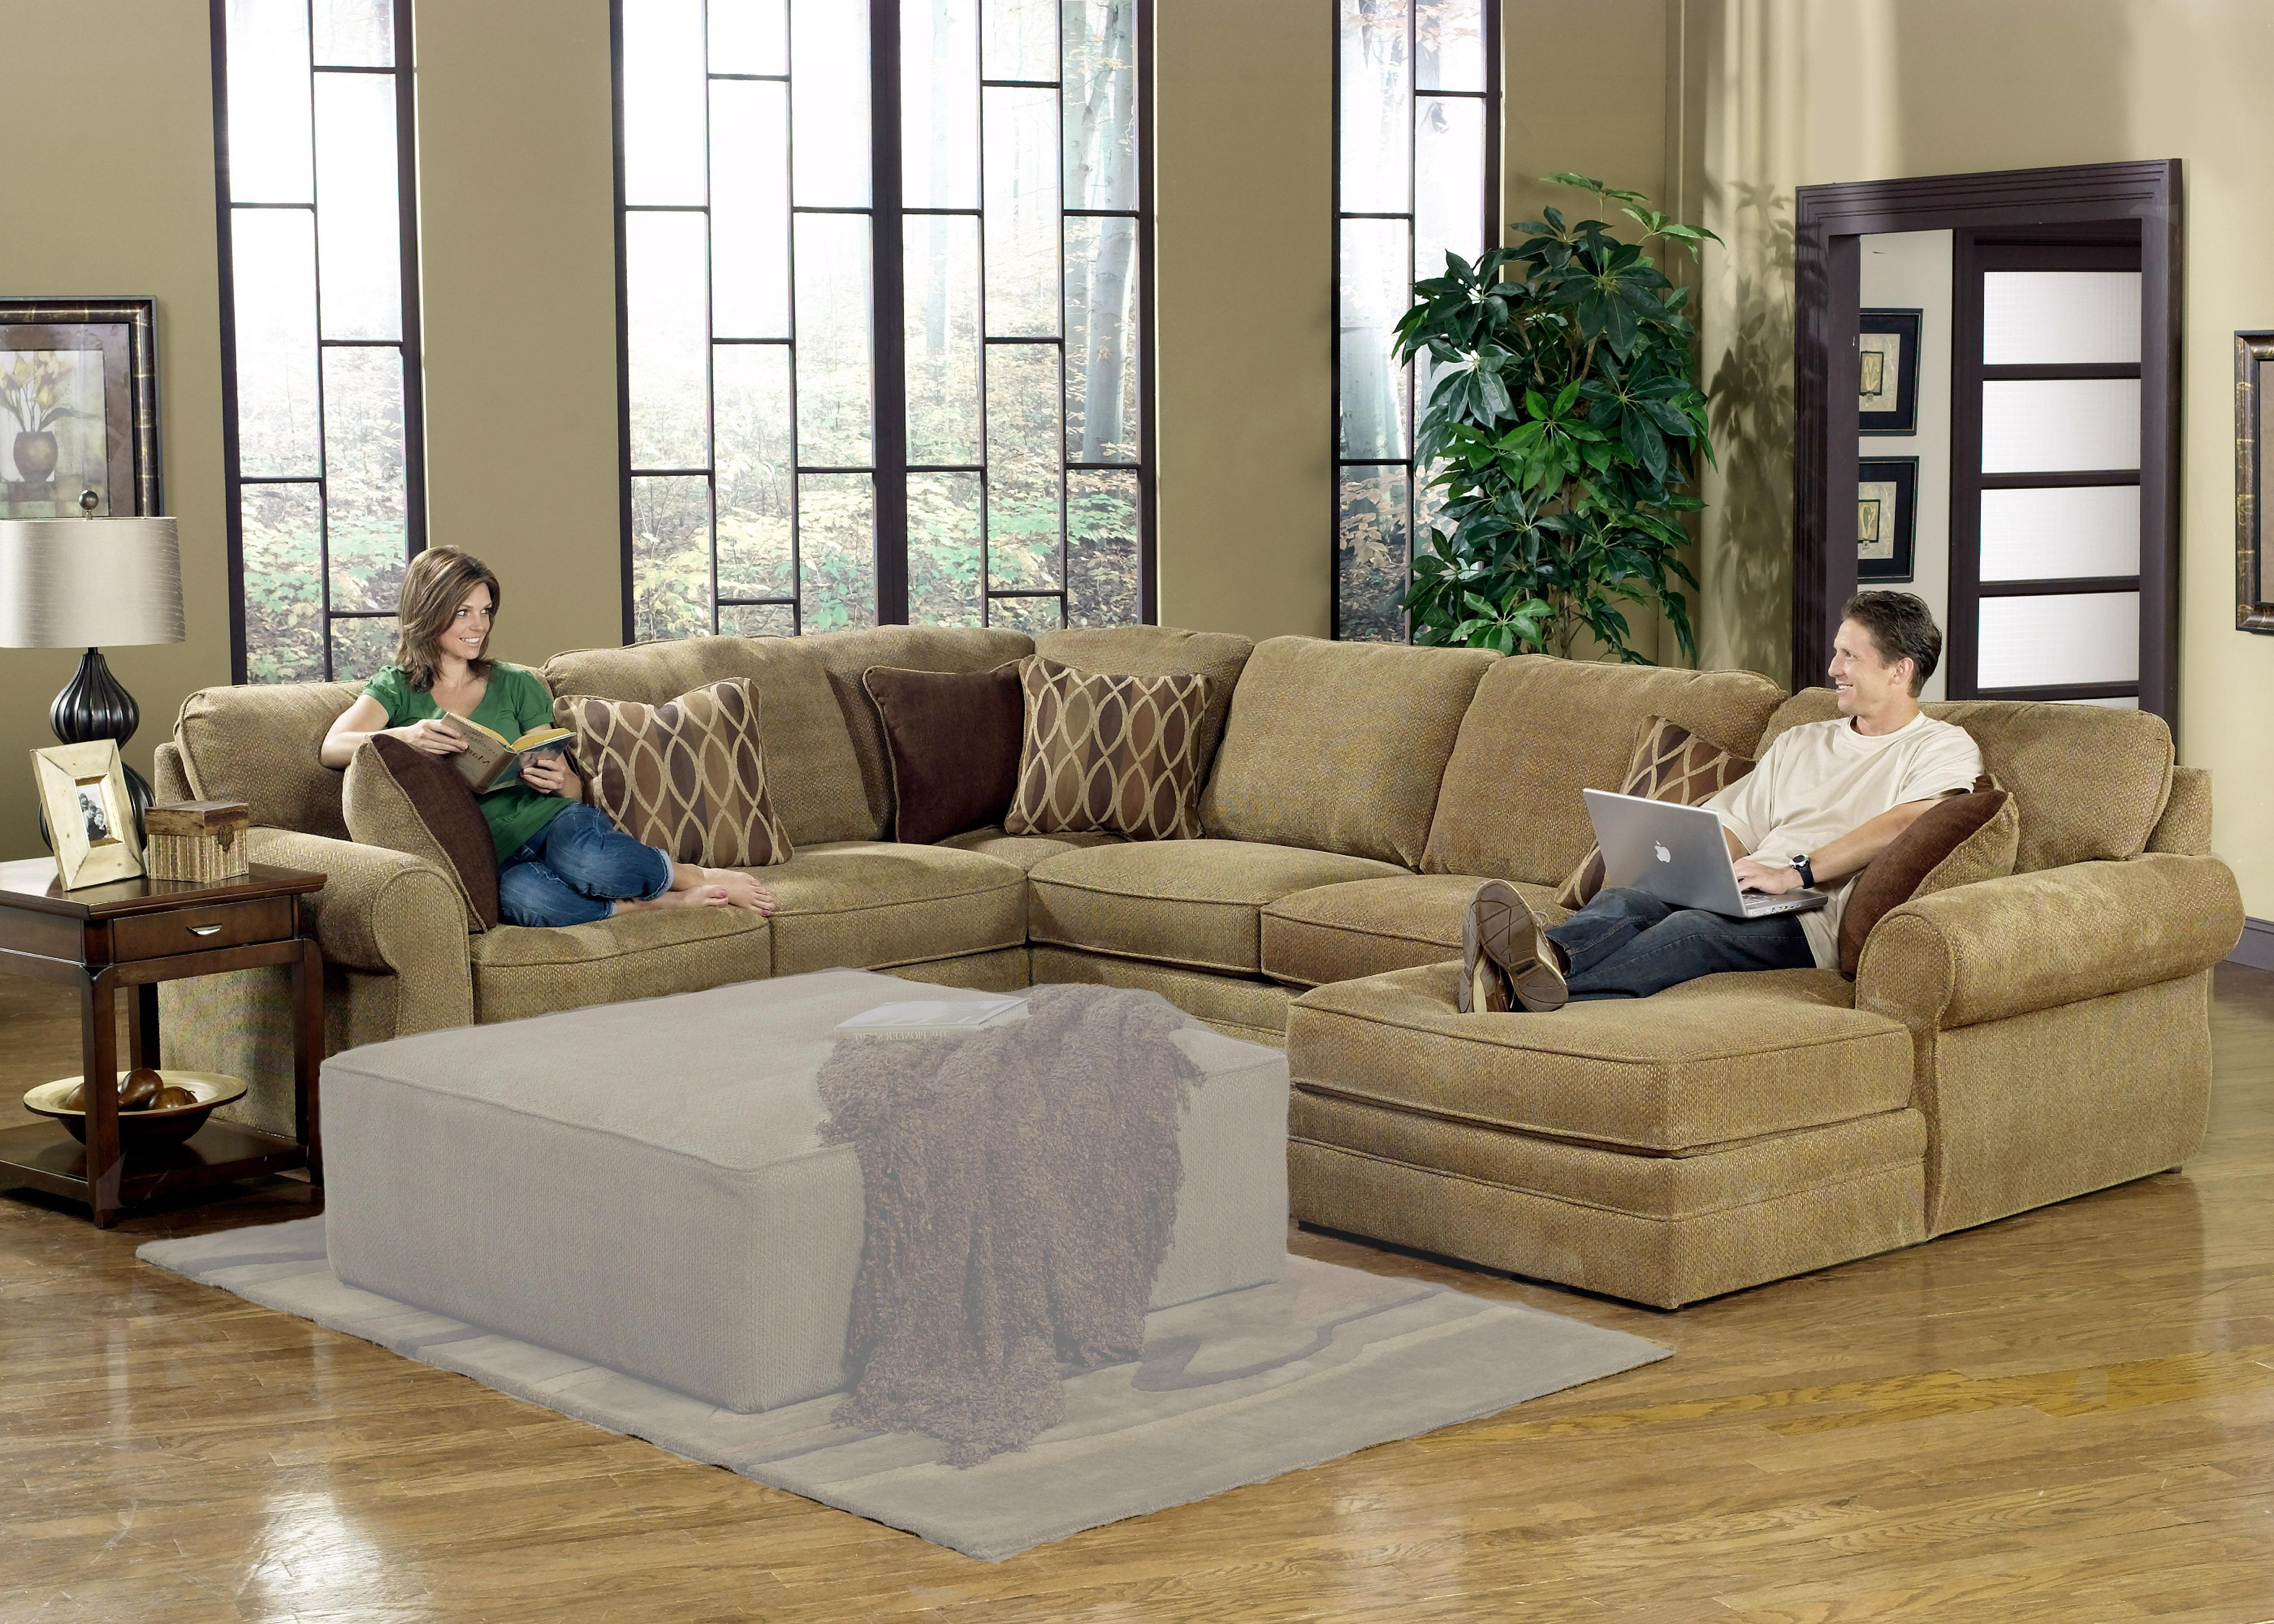 Popular Sectional Sofa Design: Adorable Large U Shaped Sectional Sofa U With Regard To Large U Shaped Sectionals (View 6 of 20)